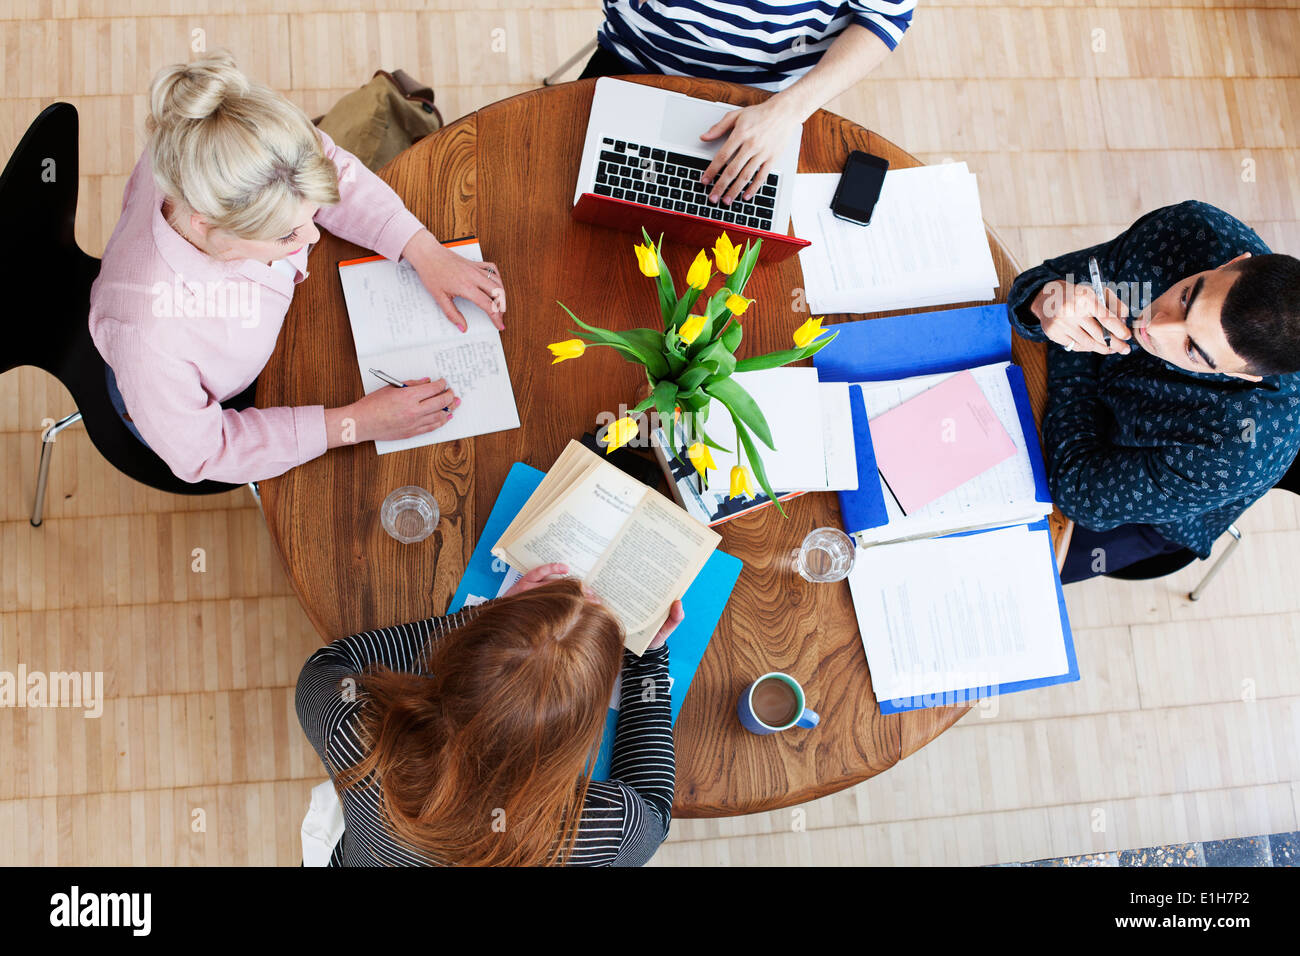 Aerial view of four young adults sitting around table studying - Stock Image